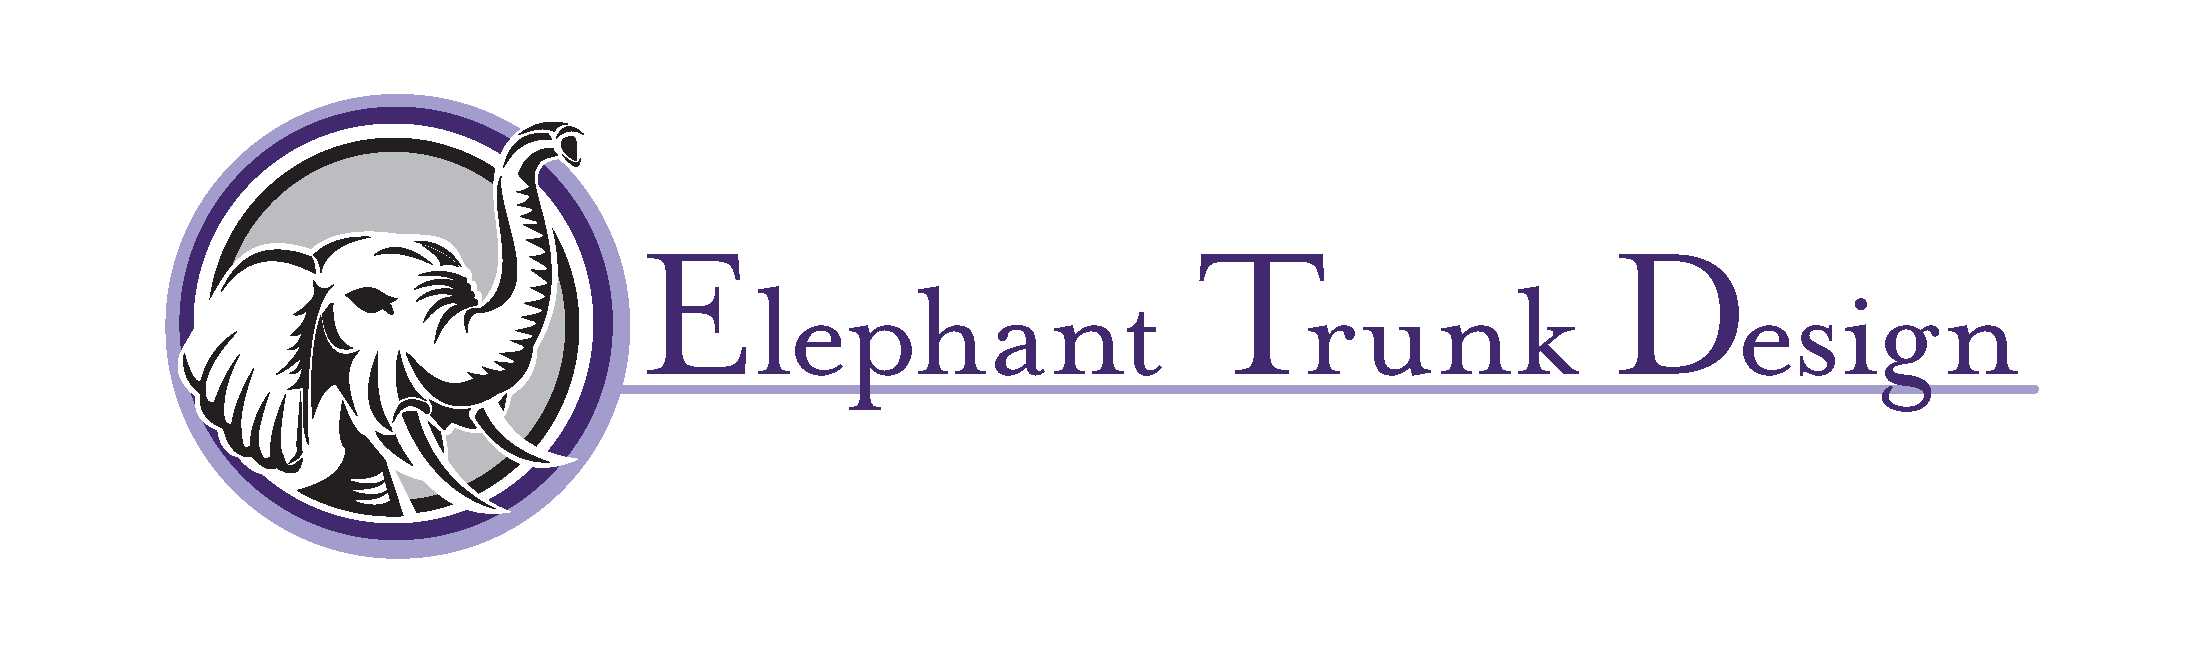 Elephant Trunk Design